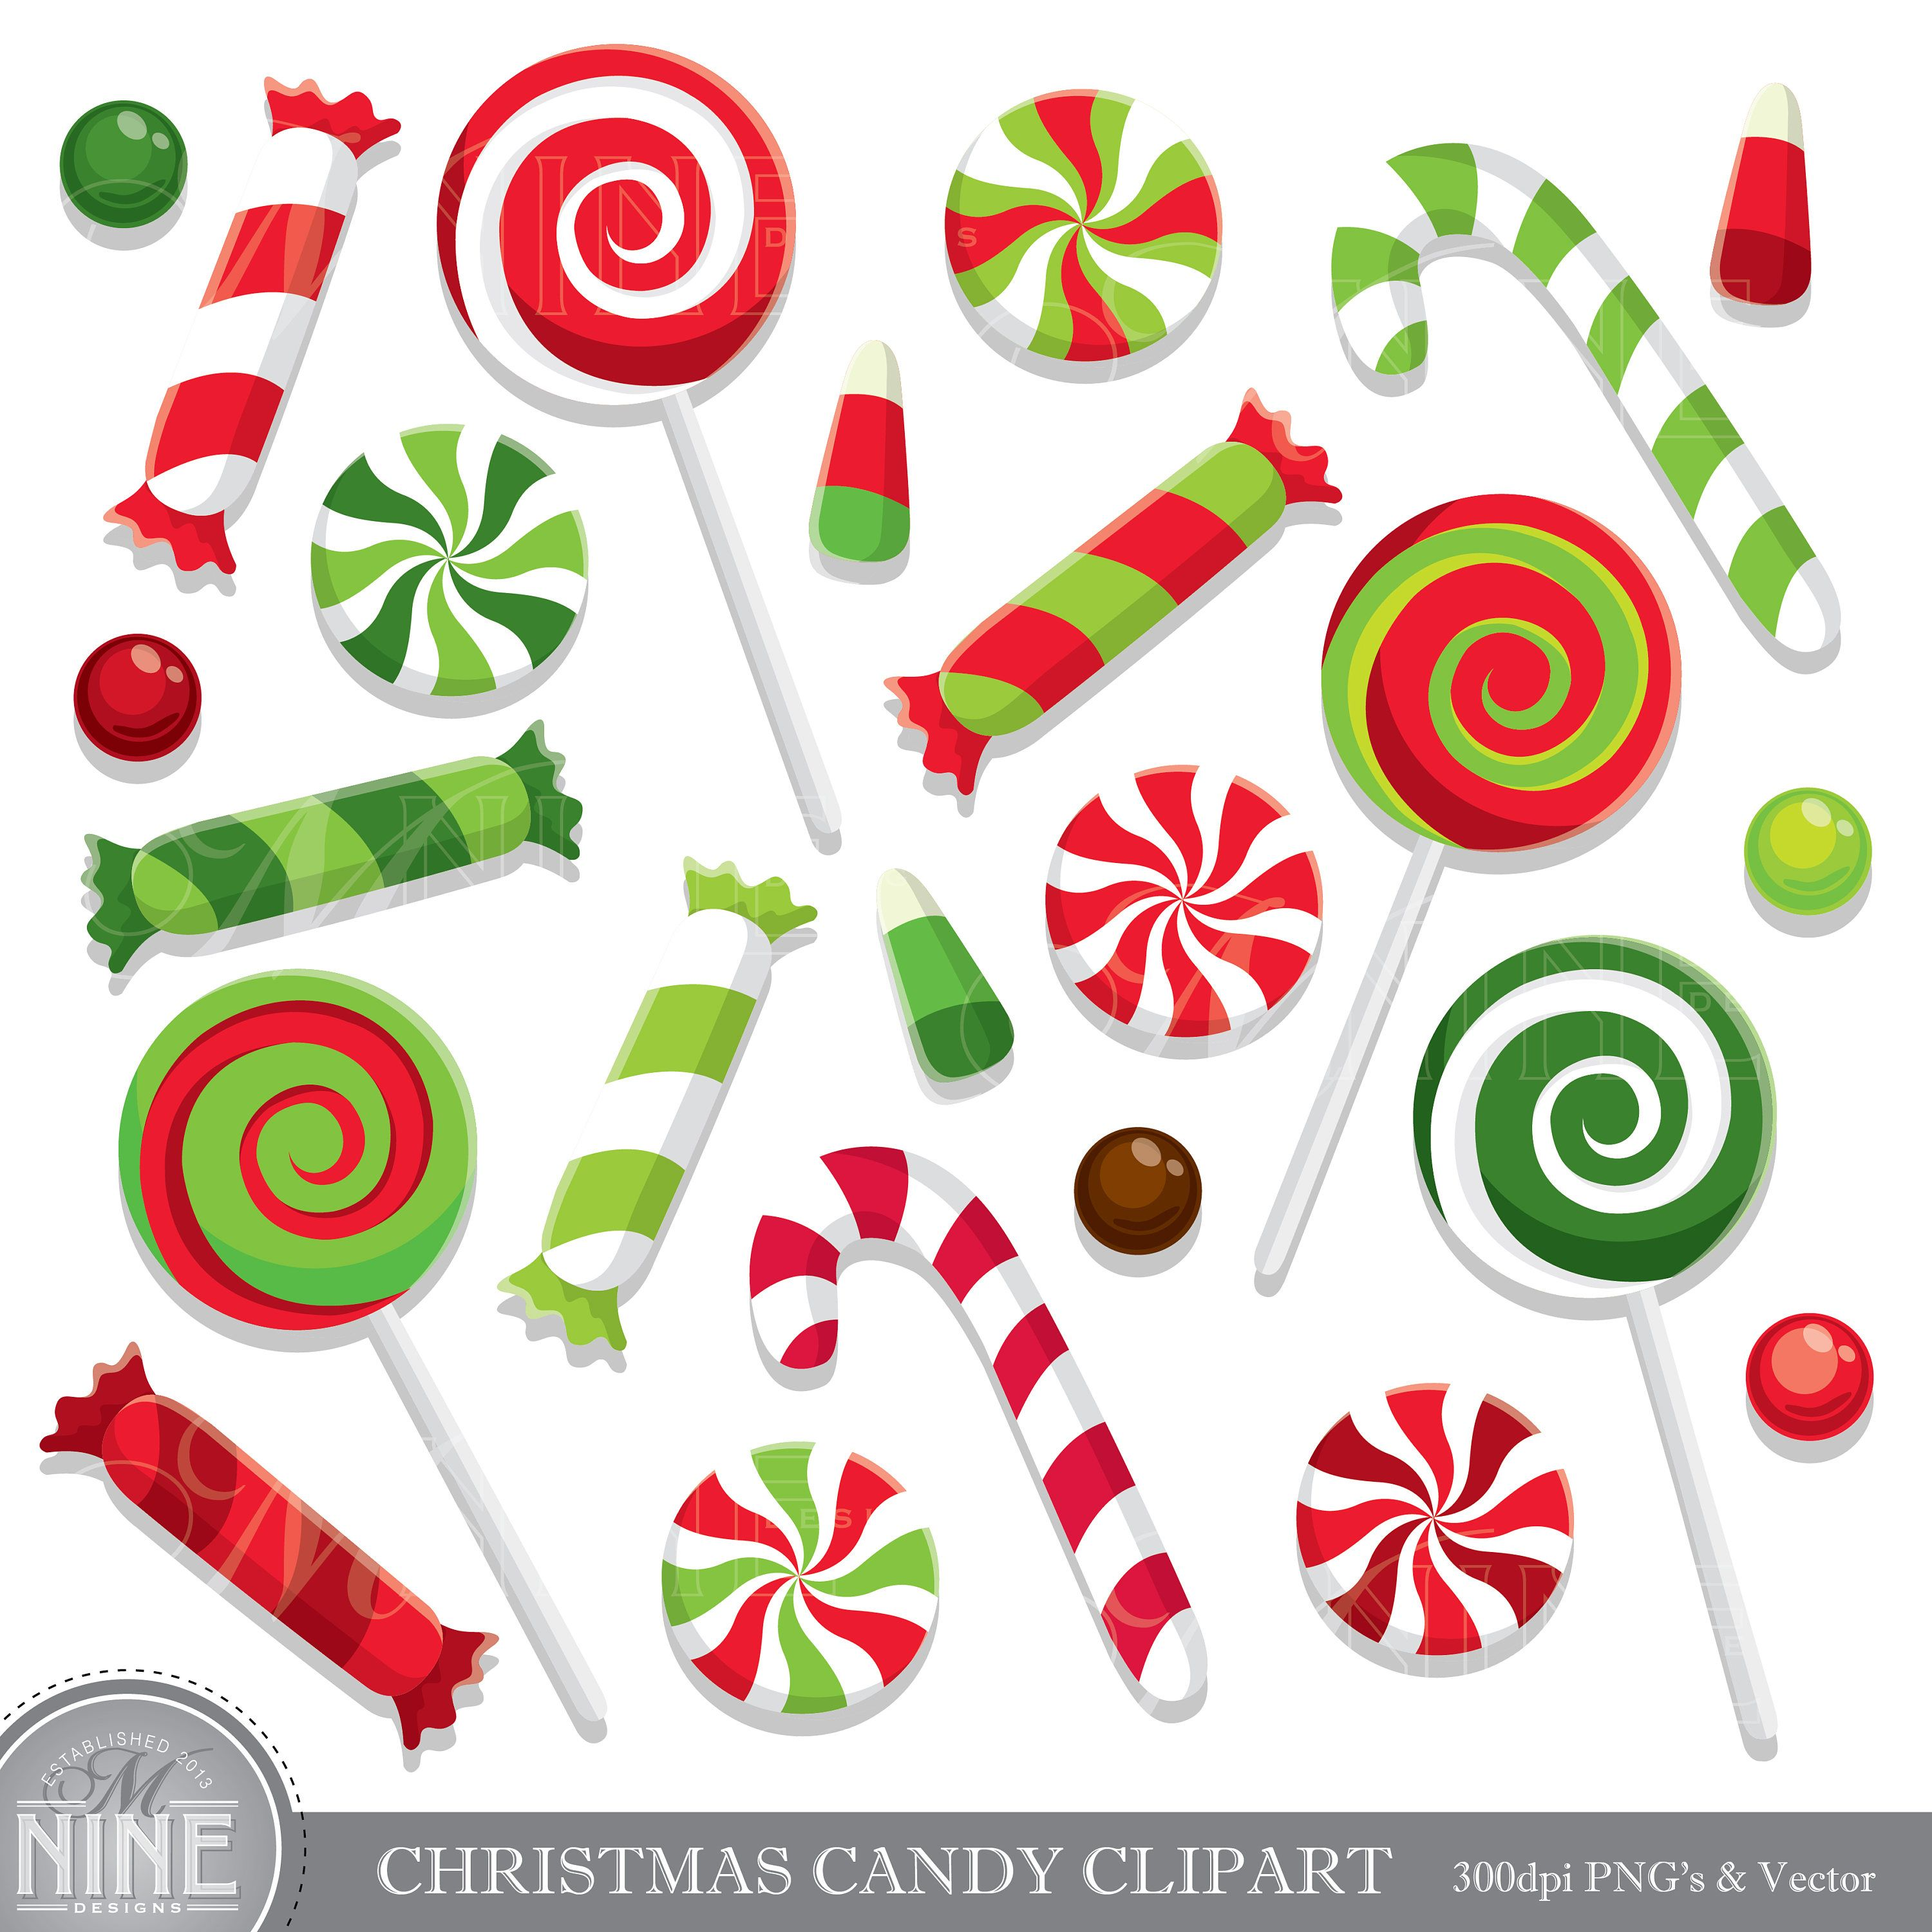 Candy clipart christmas, Candy christmas Transparent FREE